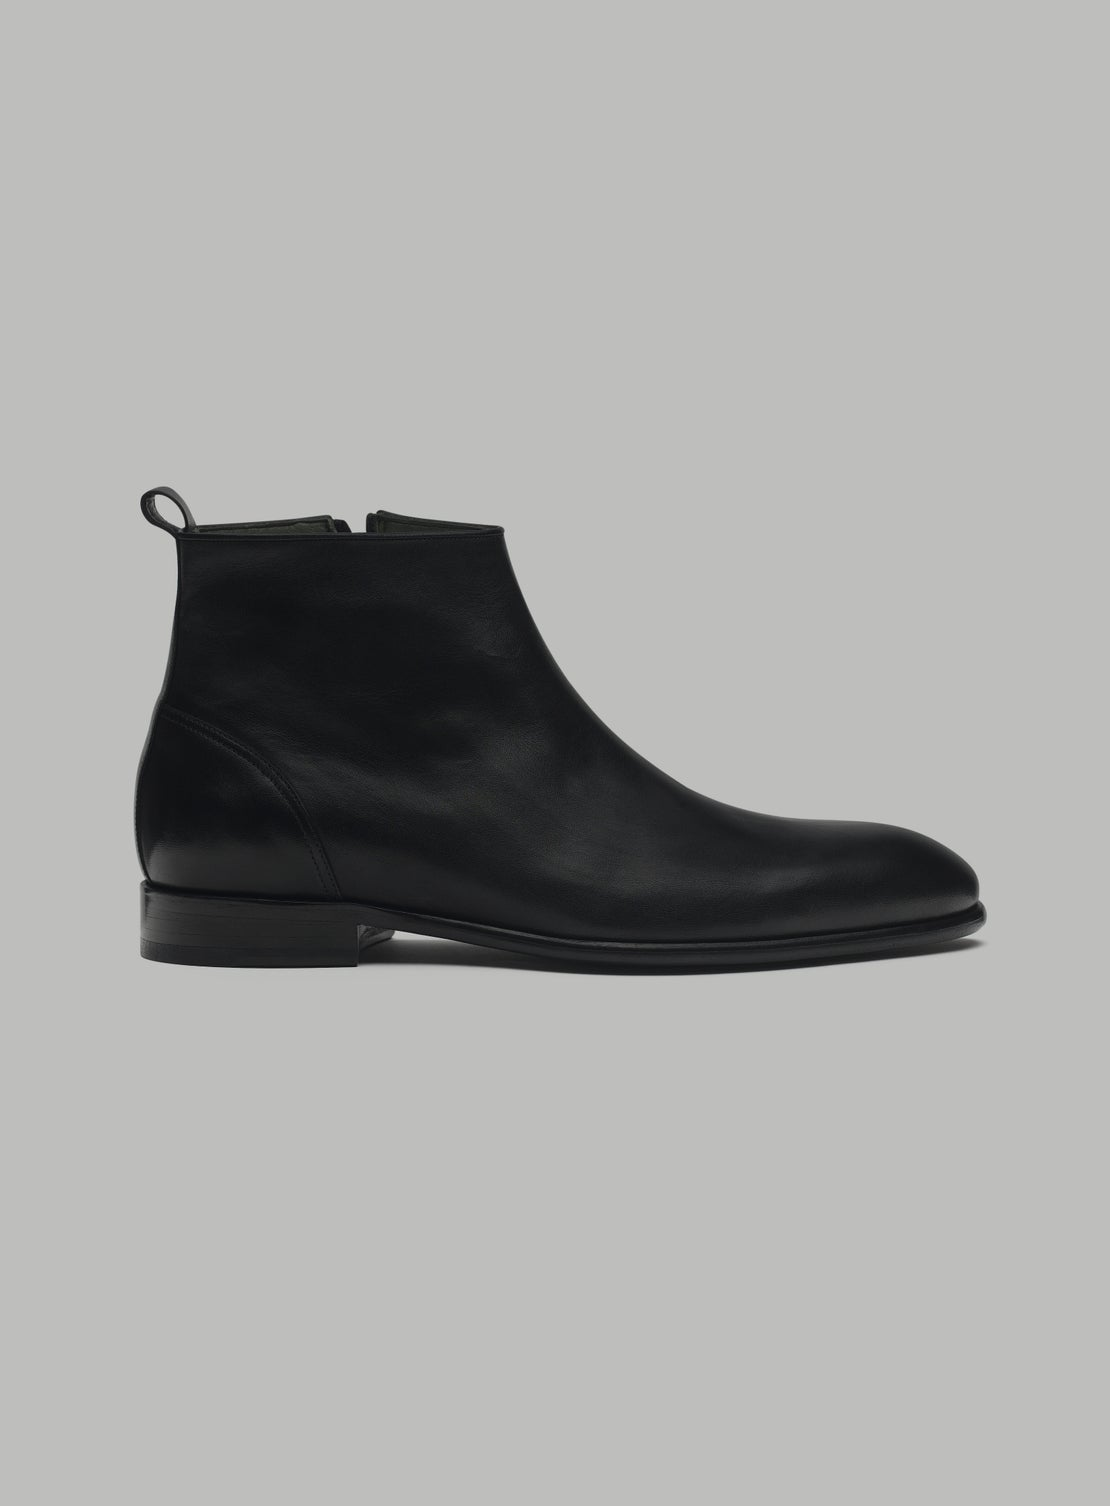 Gallagher Black Boot